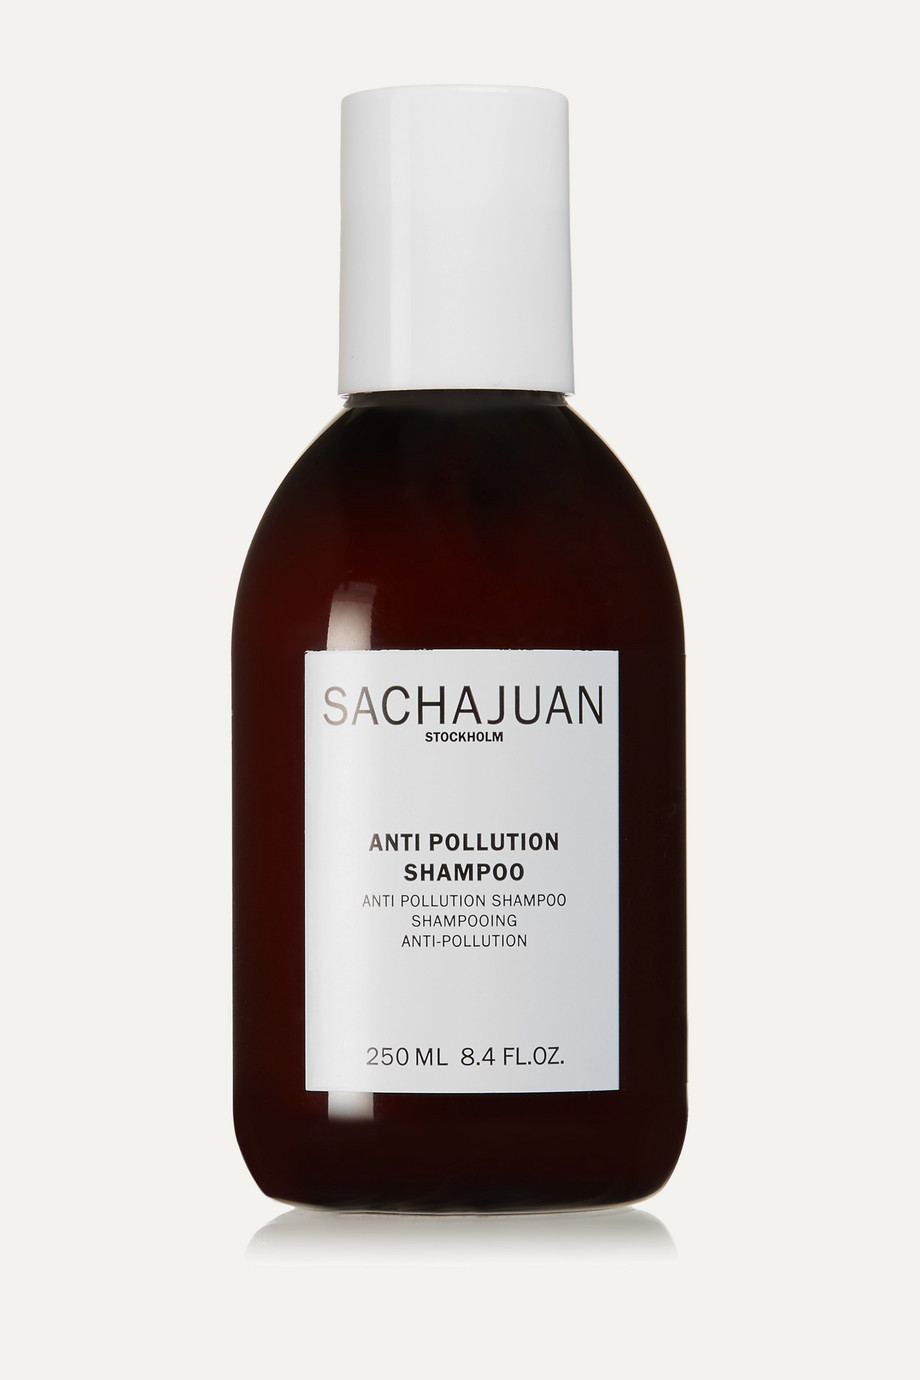 SACHAJUAN Anti Pollution Shampoo, 250ml